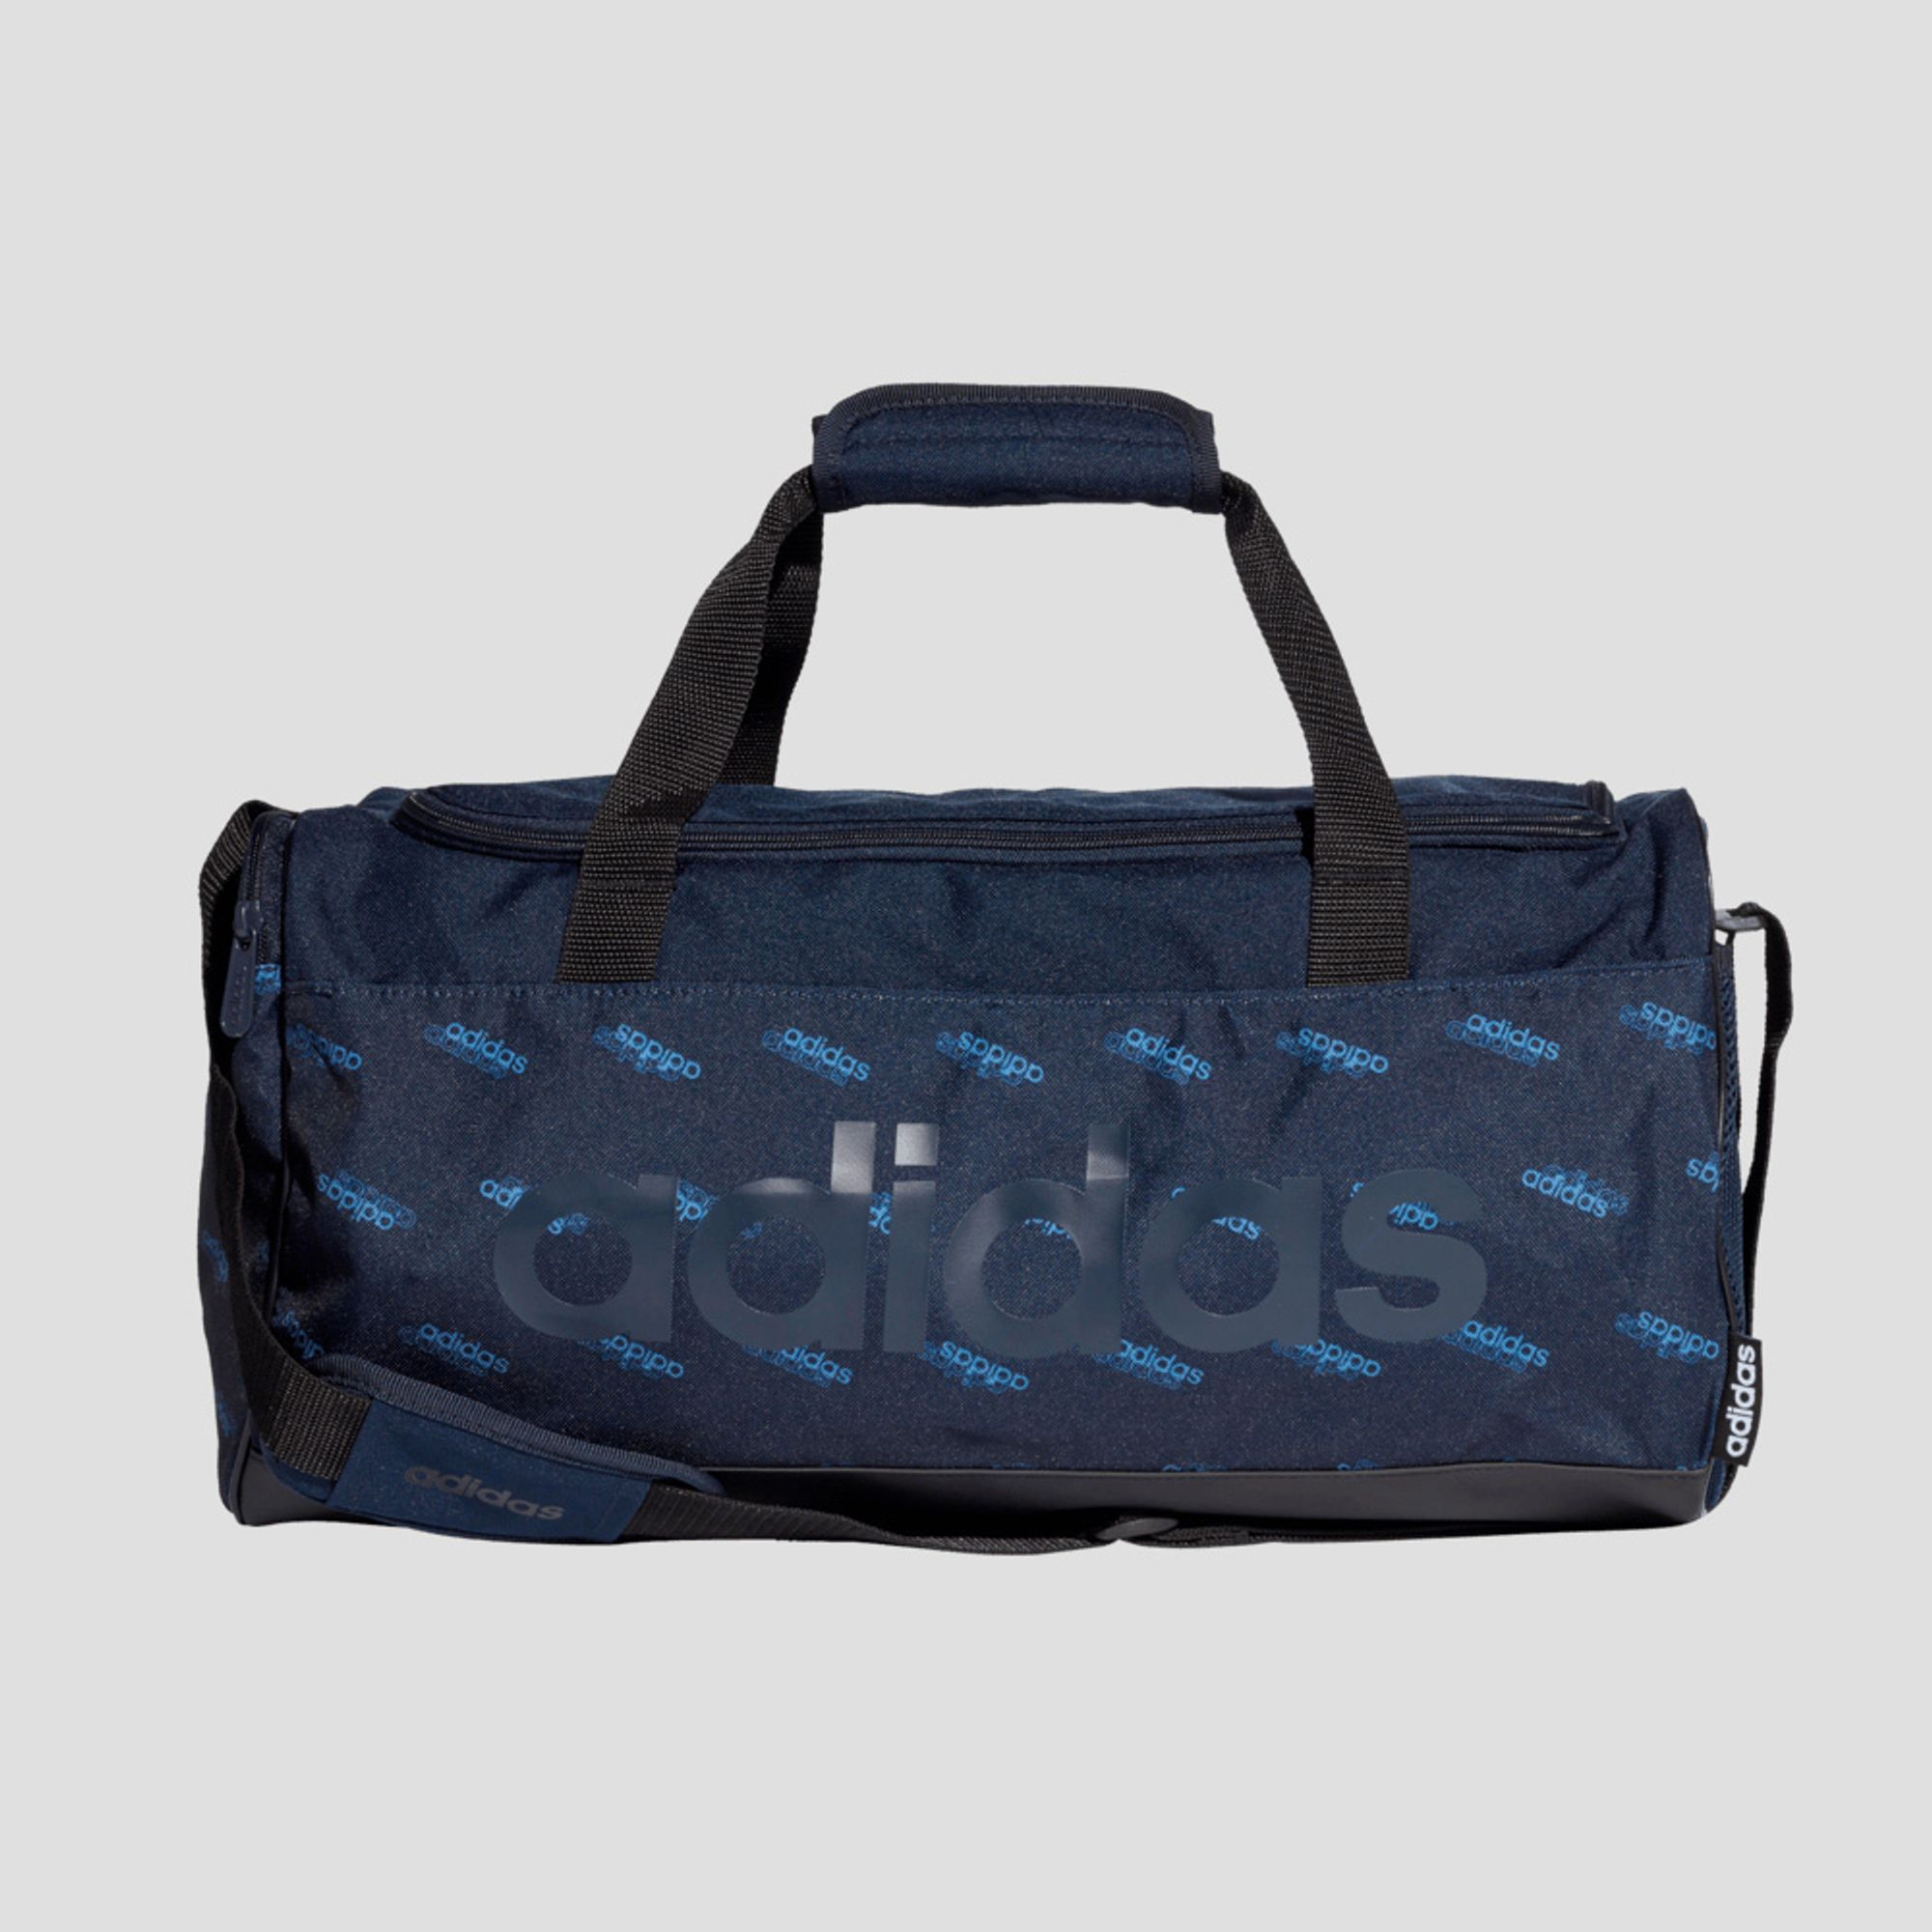 MORRAL-ADIDAS-LINEAR-DUFFLE-SMALL